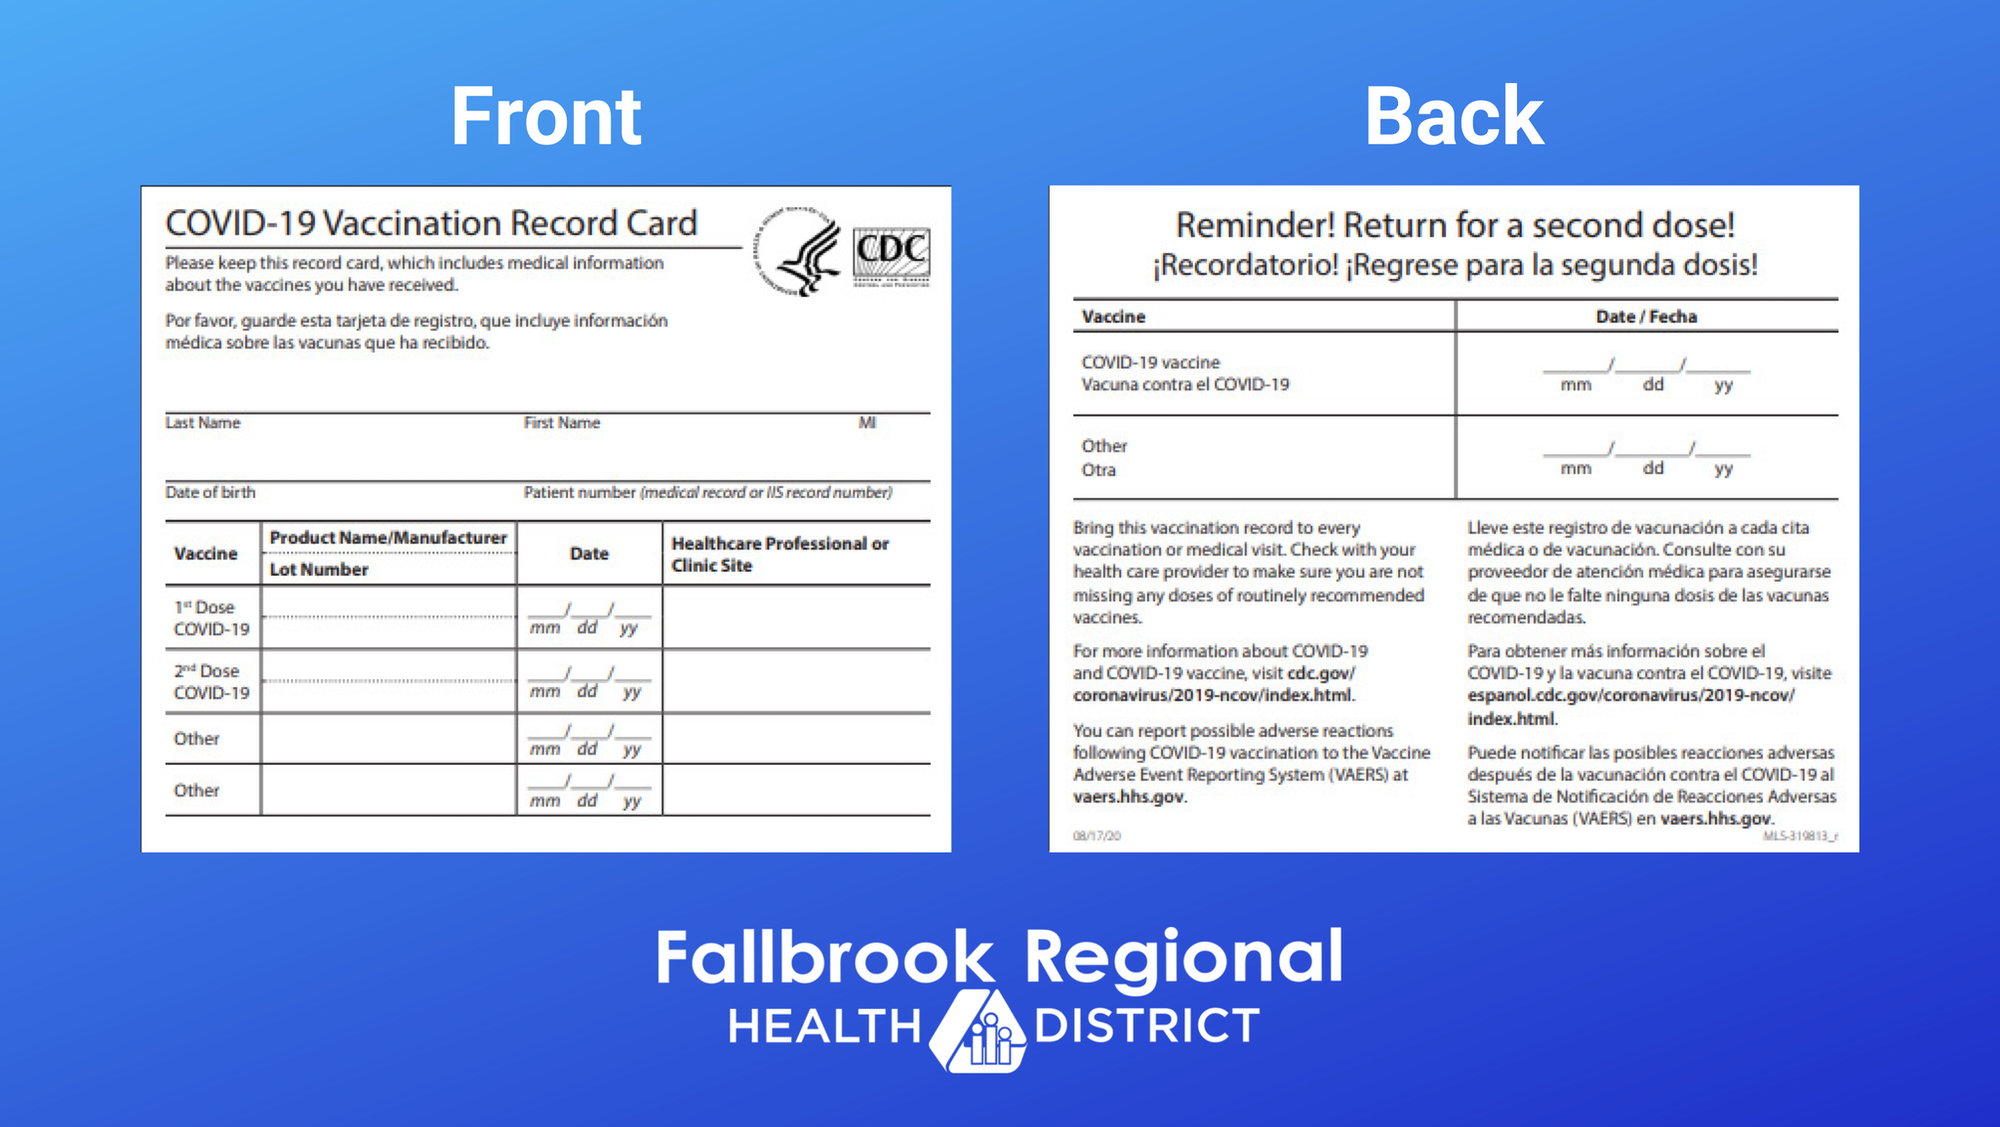 picture of front and back of COVID-19 vaccination record card